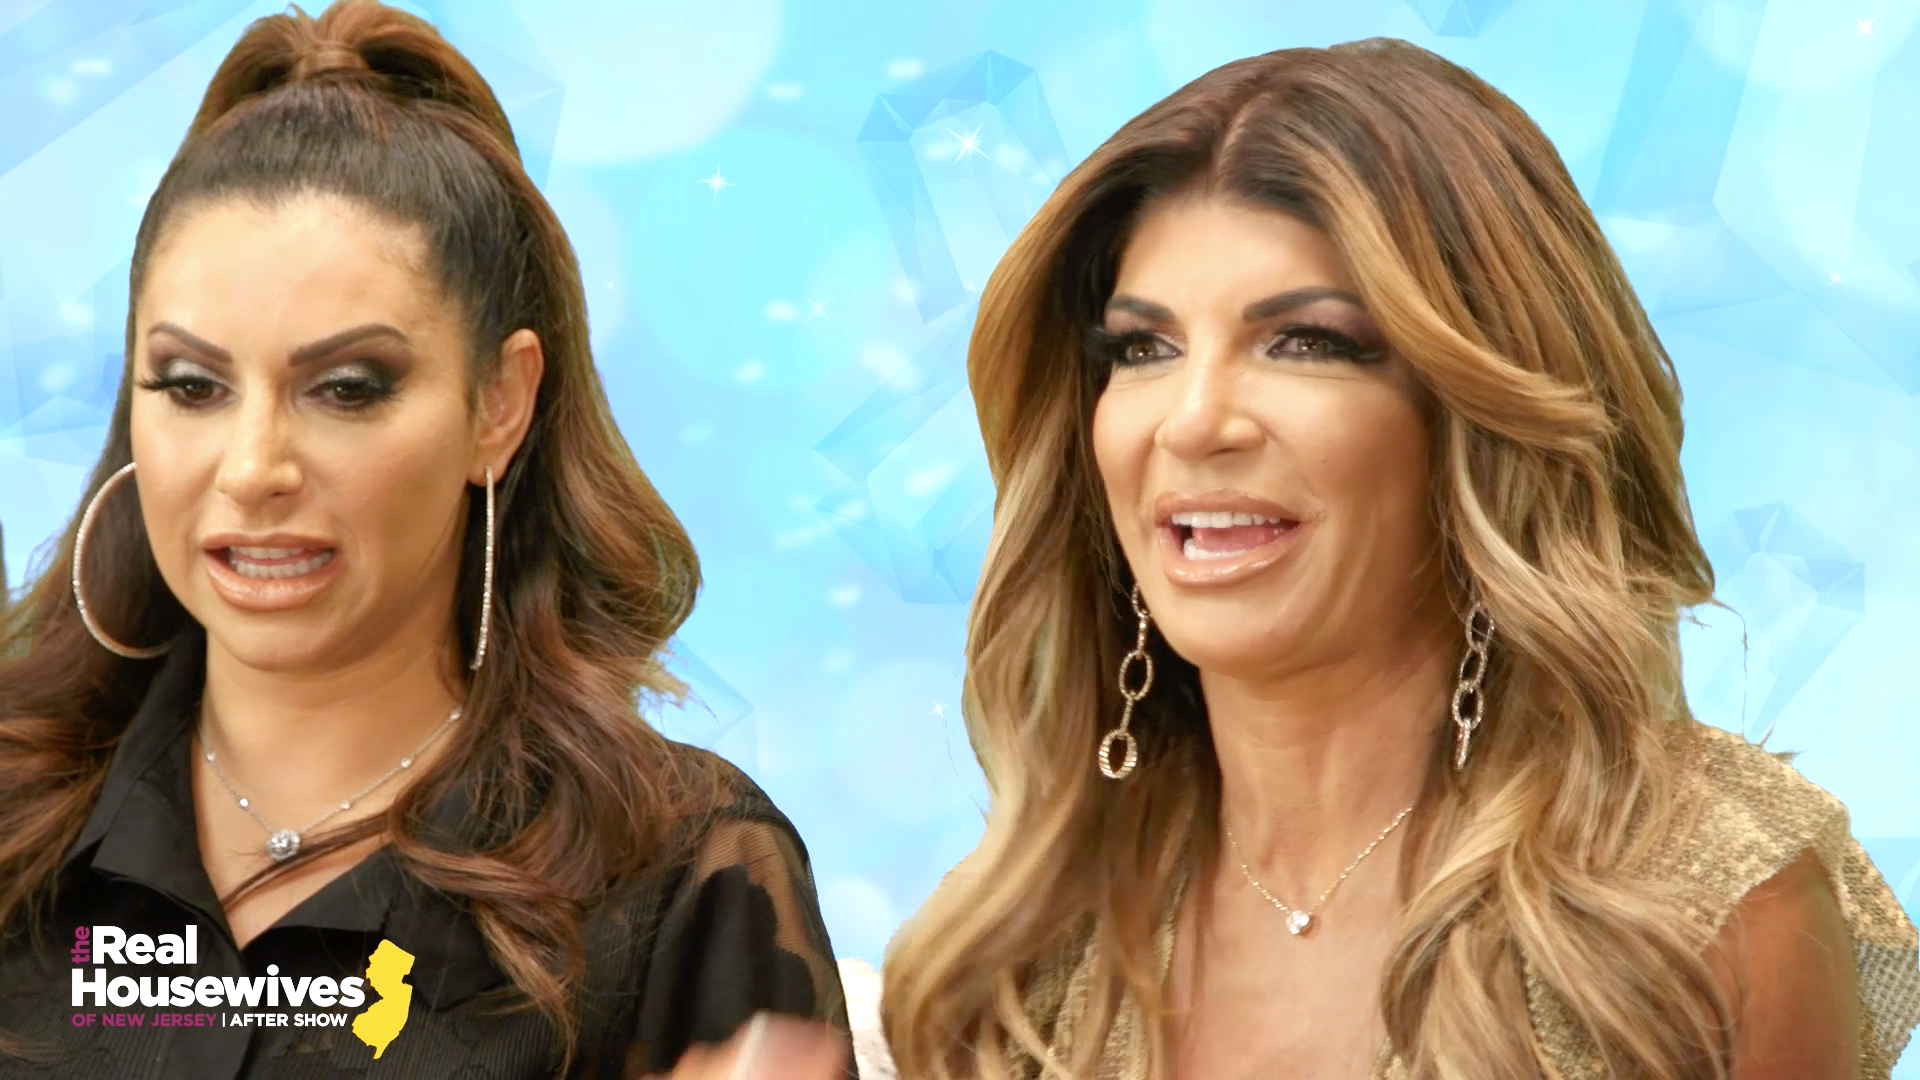 Do Teresa Giudice and Jennifer Aydin Remember Flirting With Each Other?